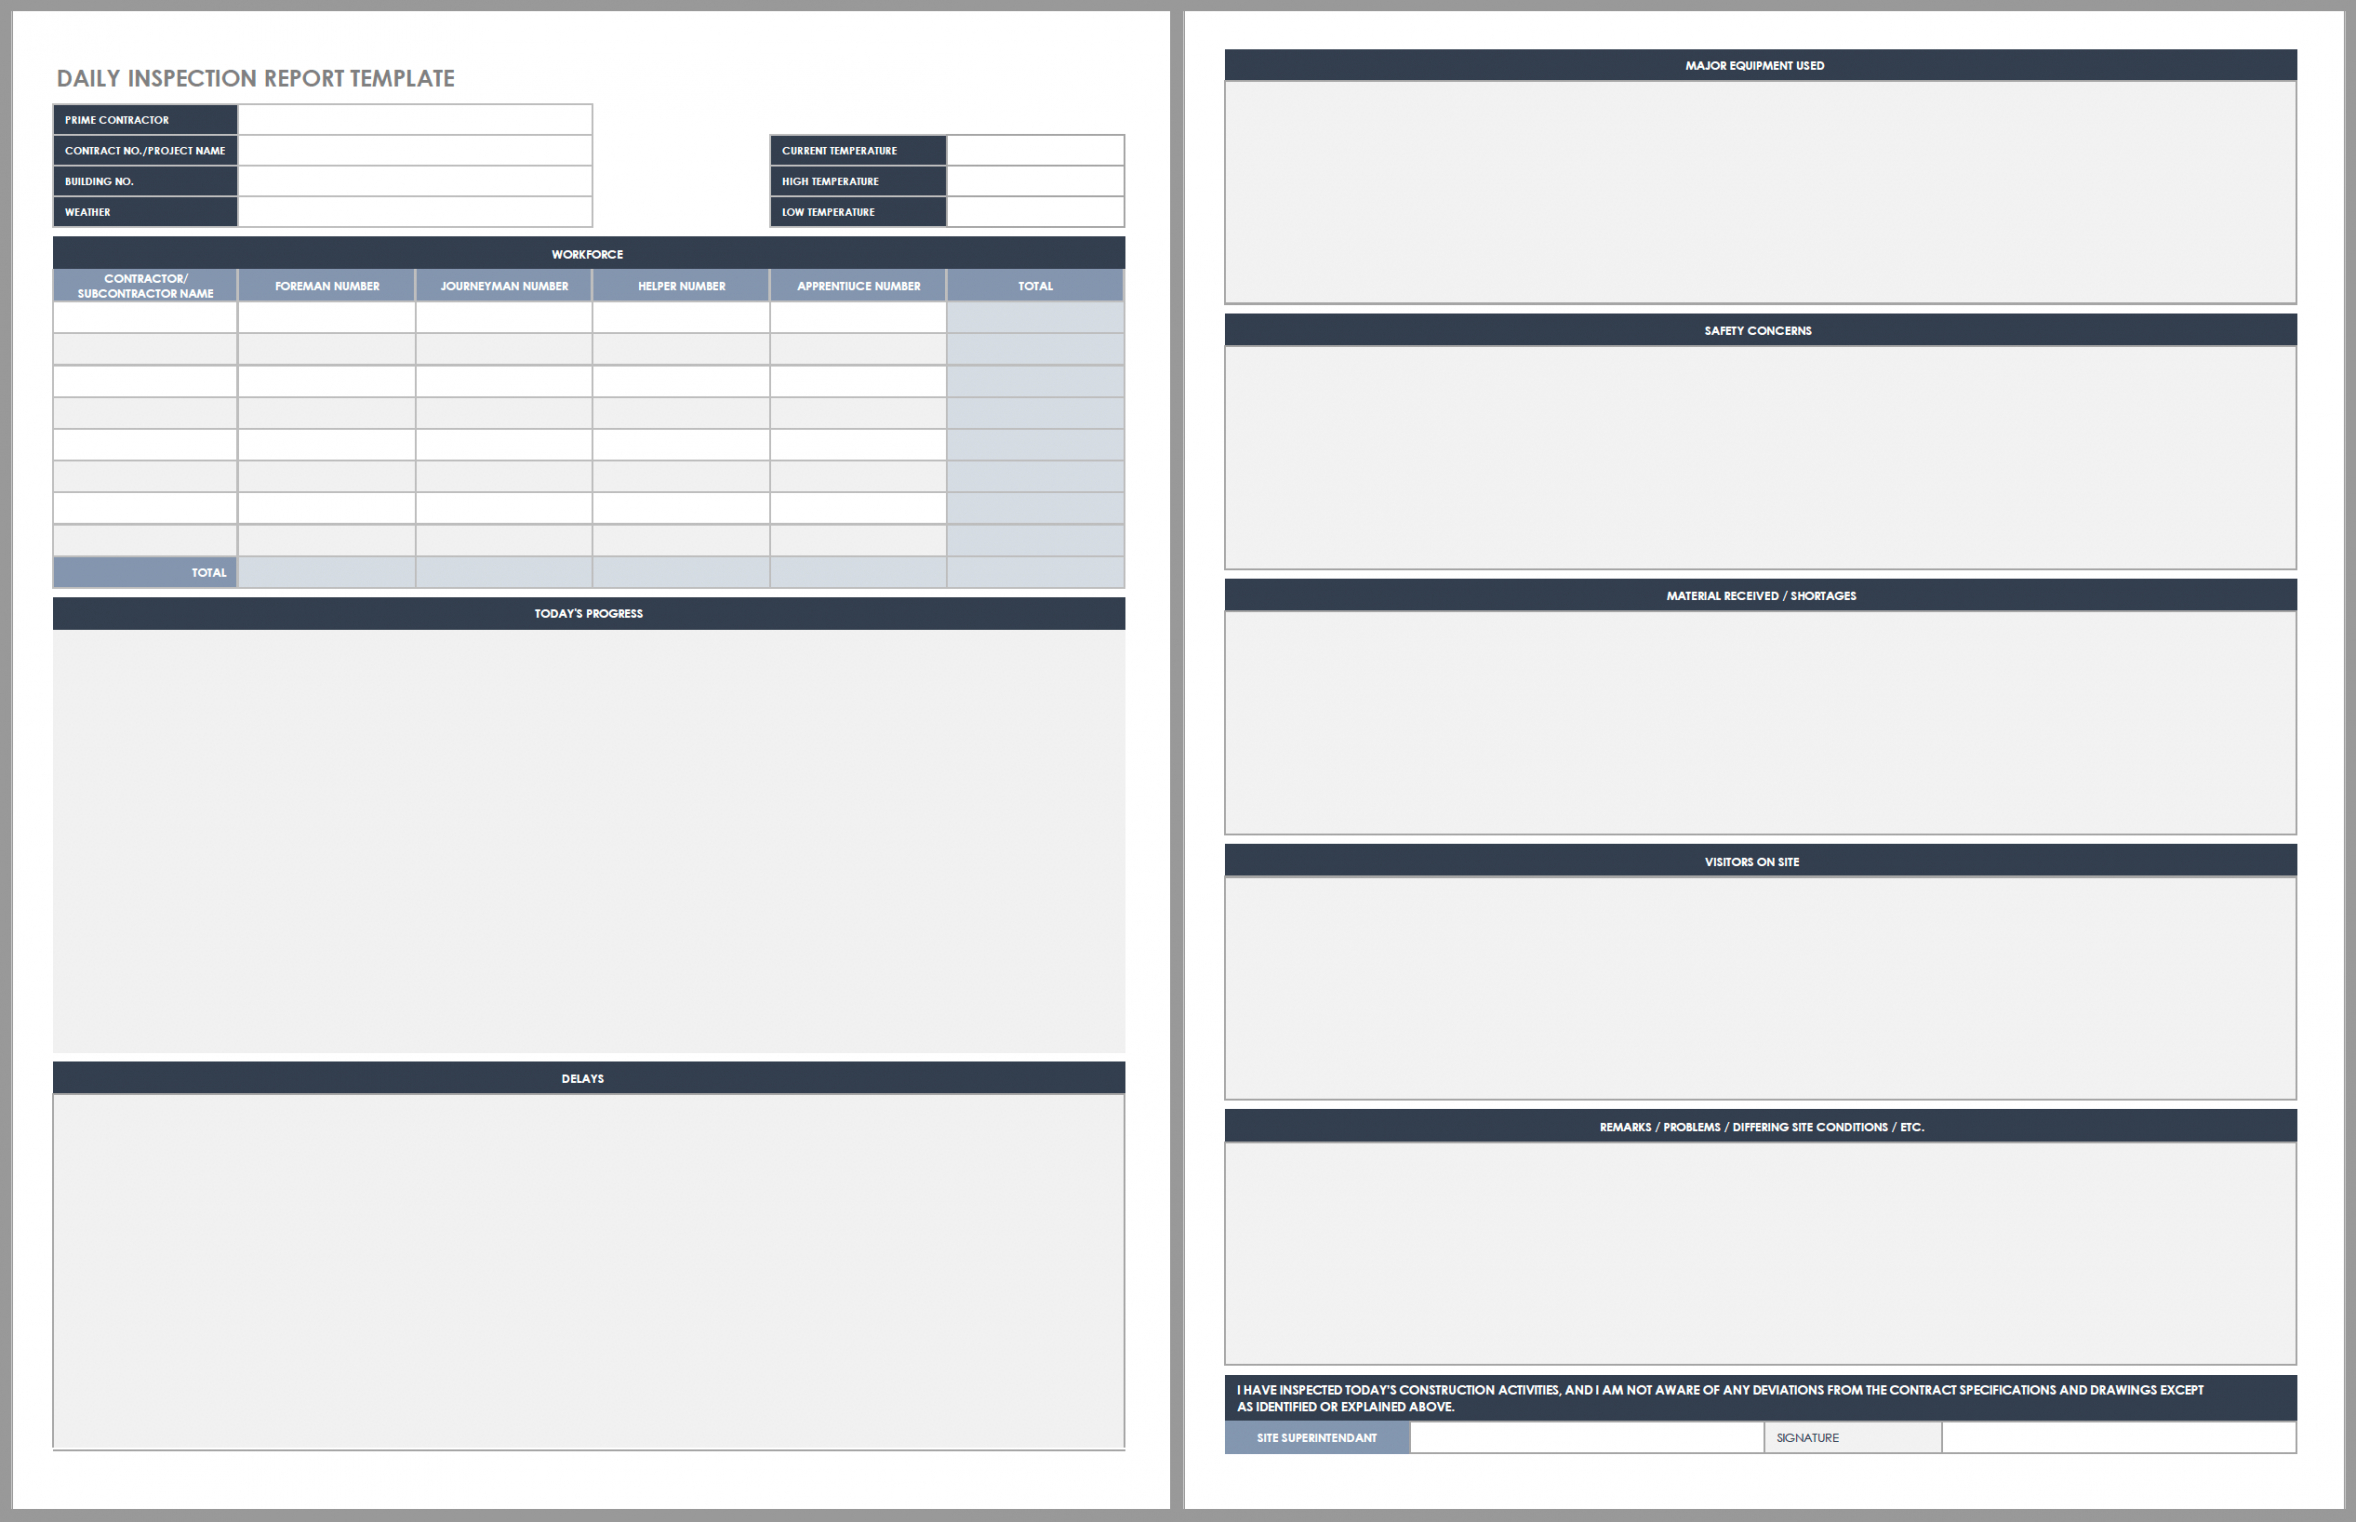 free daily work schedule templates  smartsheet daily operations report template example